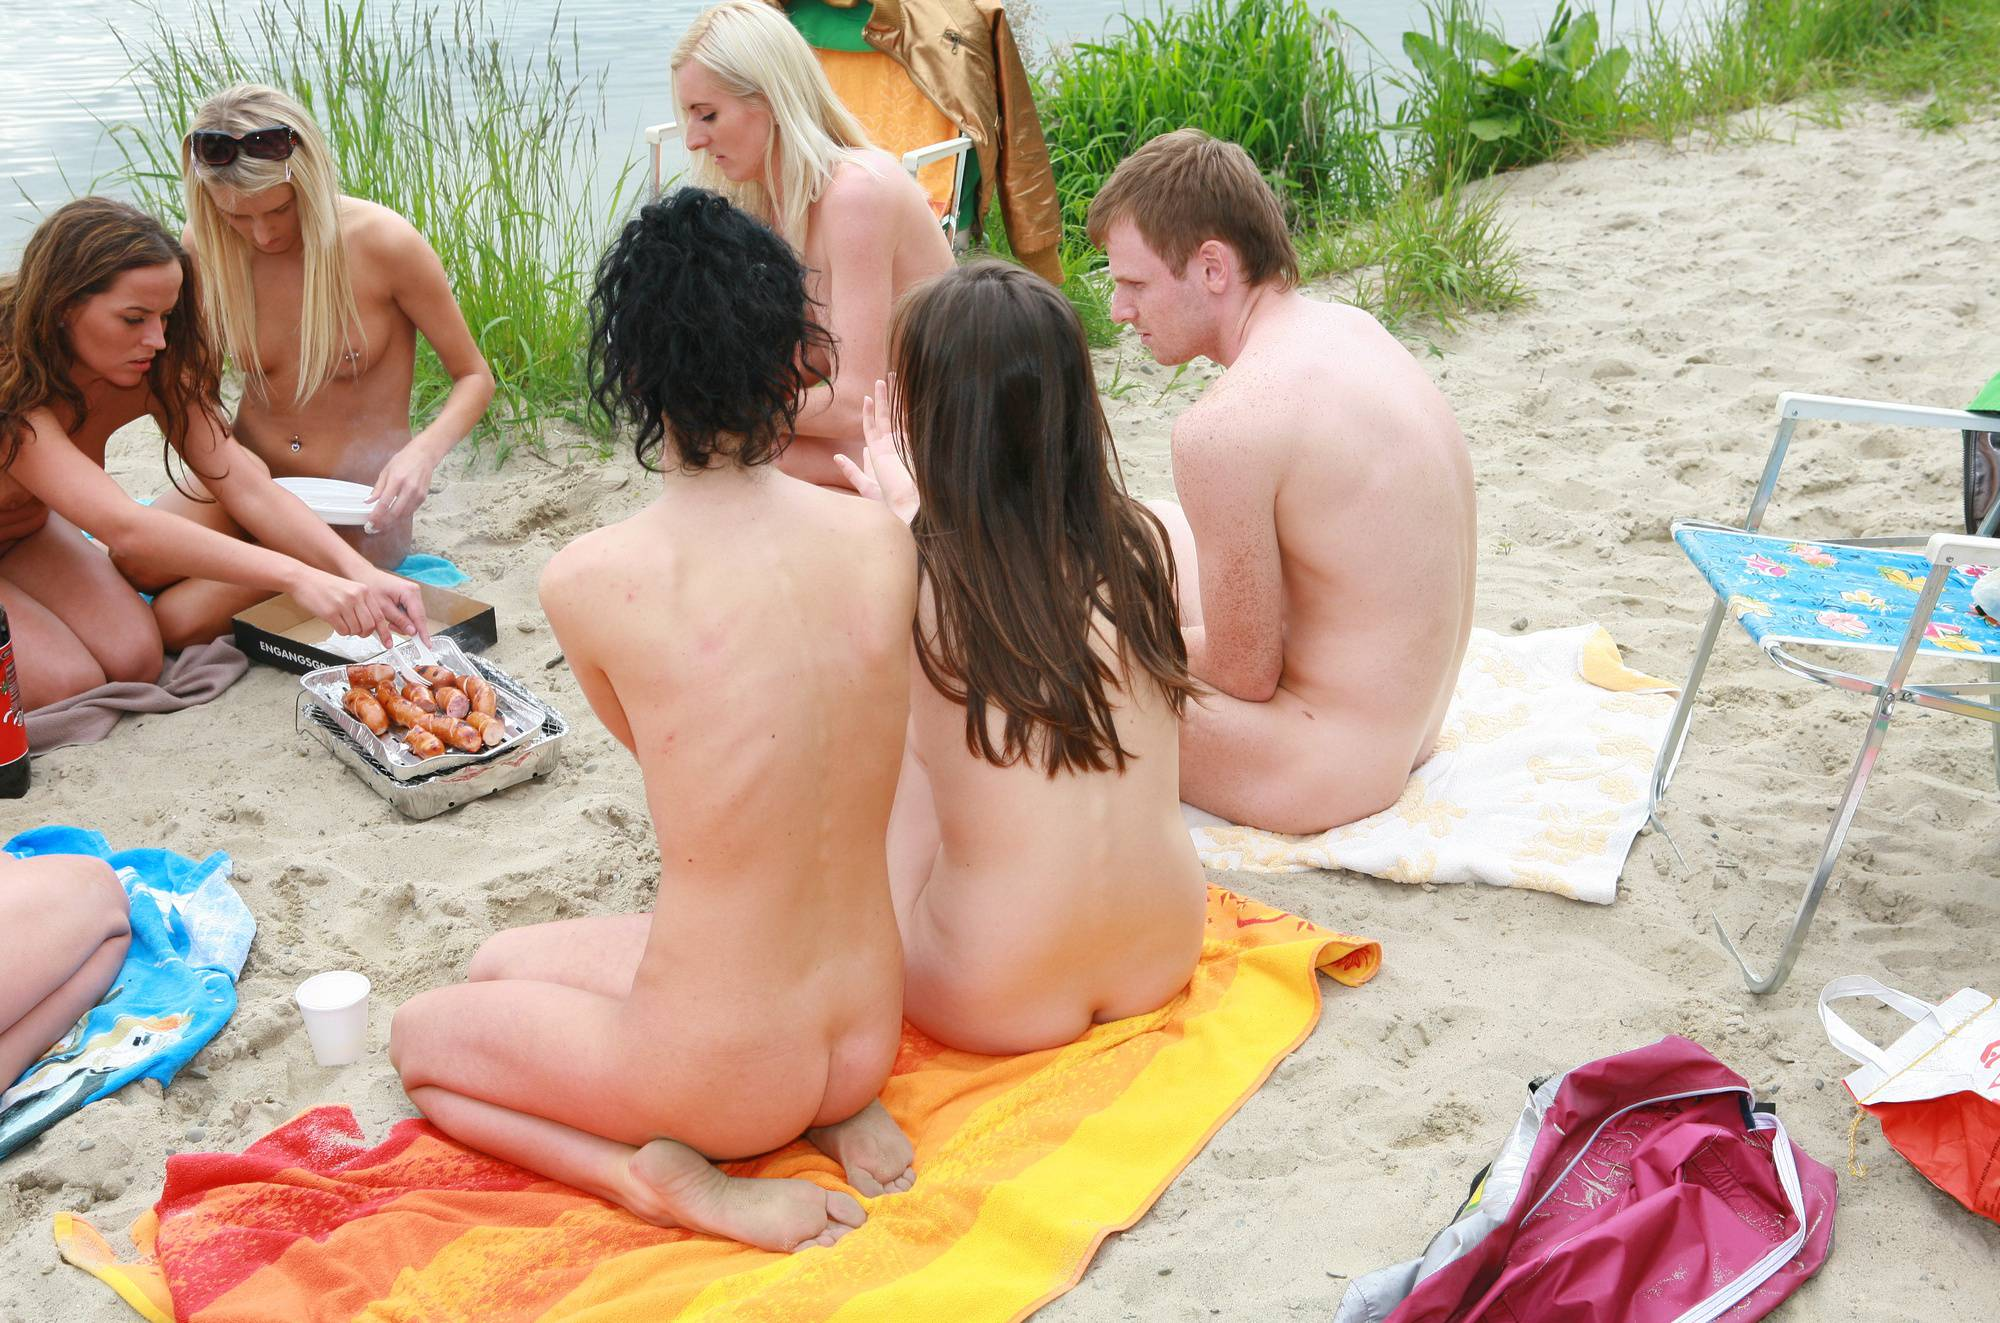 Nudist Photos Lakeside Picnic For All - 1